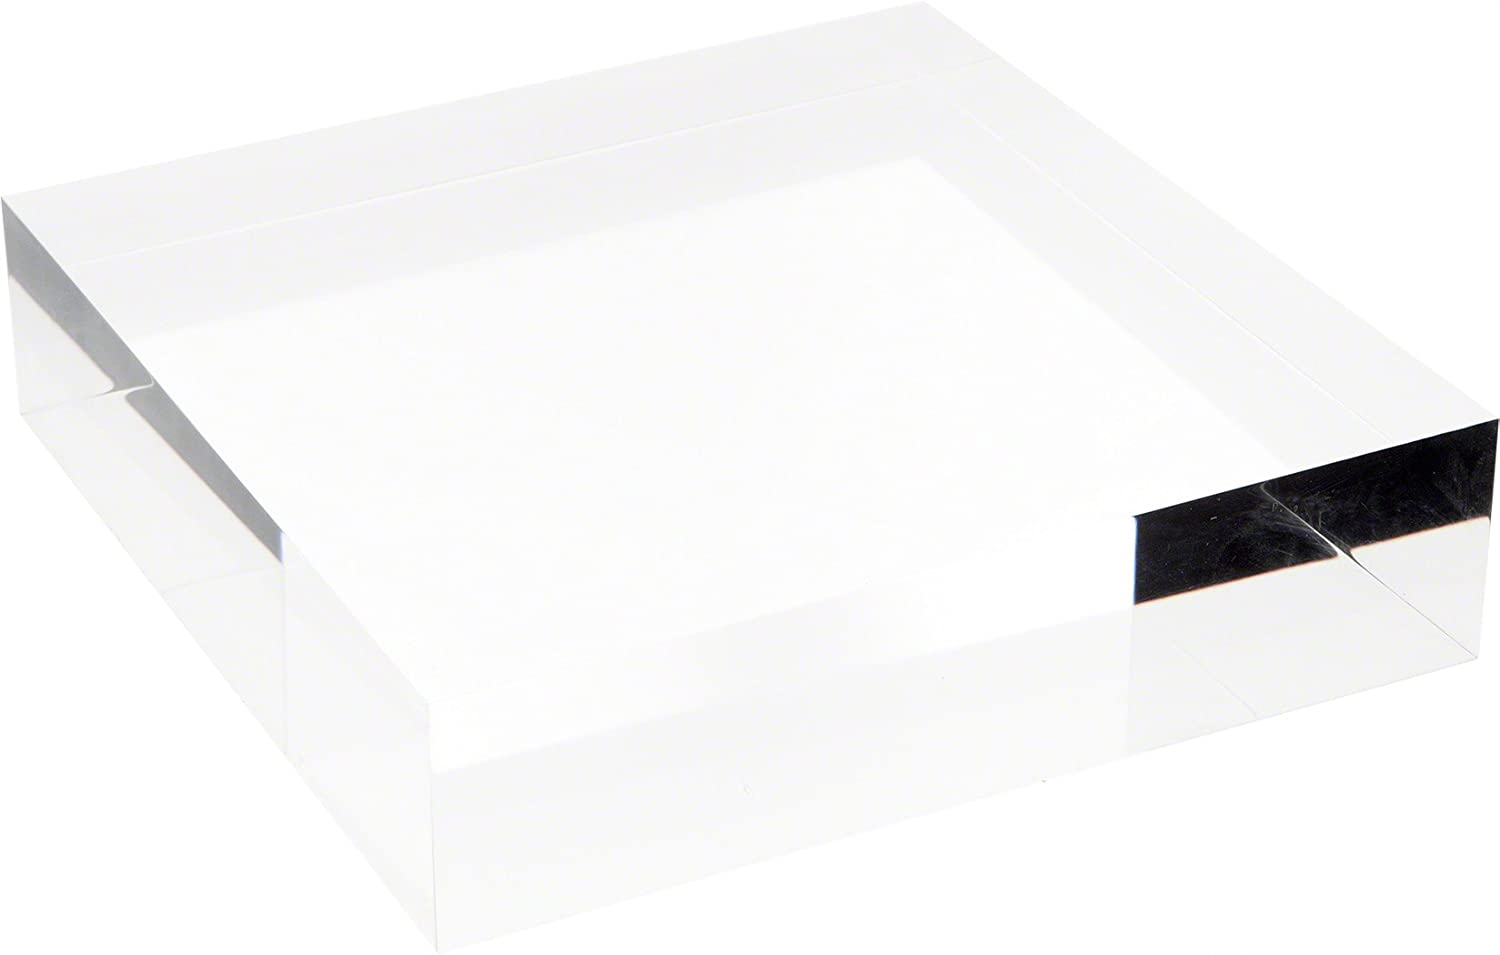 "Plymor Clear Polished Acrylic Square Display Block, 2"" H x 8"" W x 8"" D"